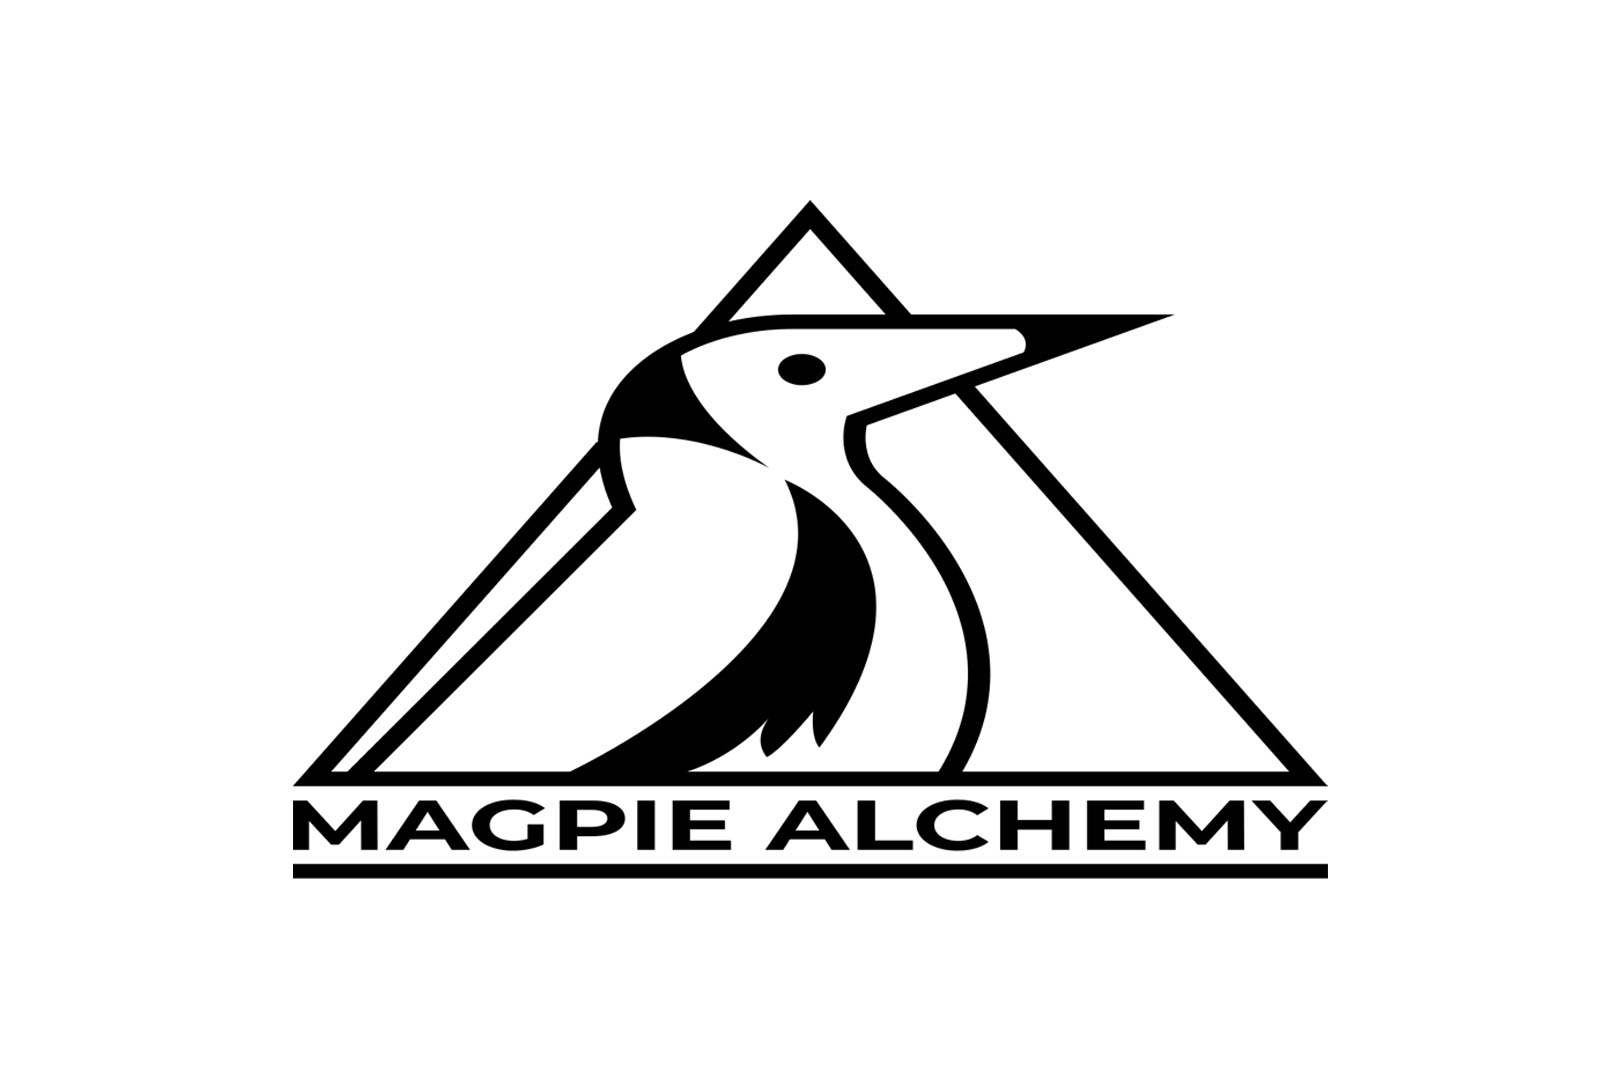 Magpie_Alchemy_logo_mock_0002_Layer 5